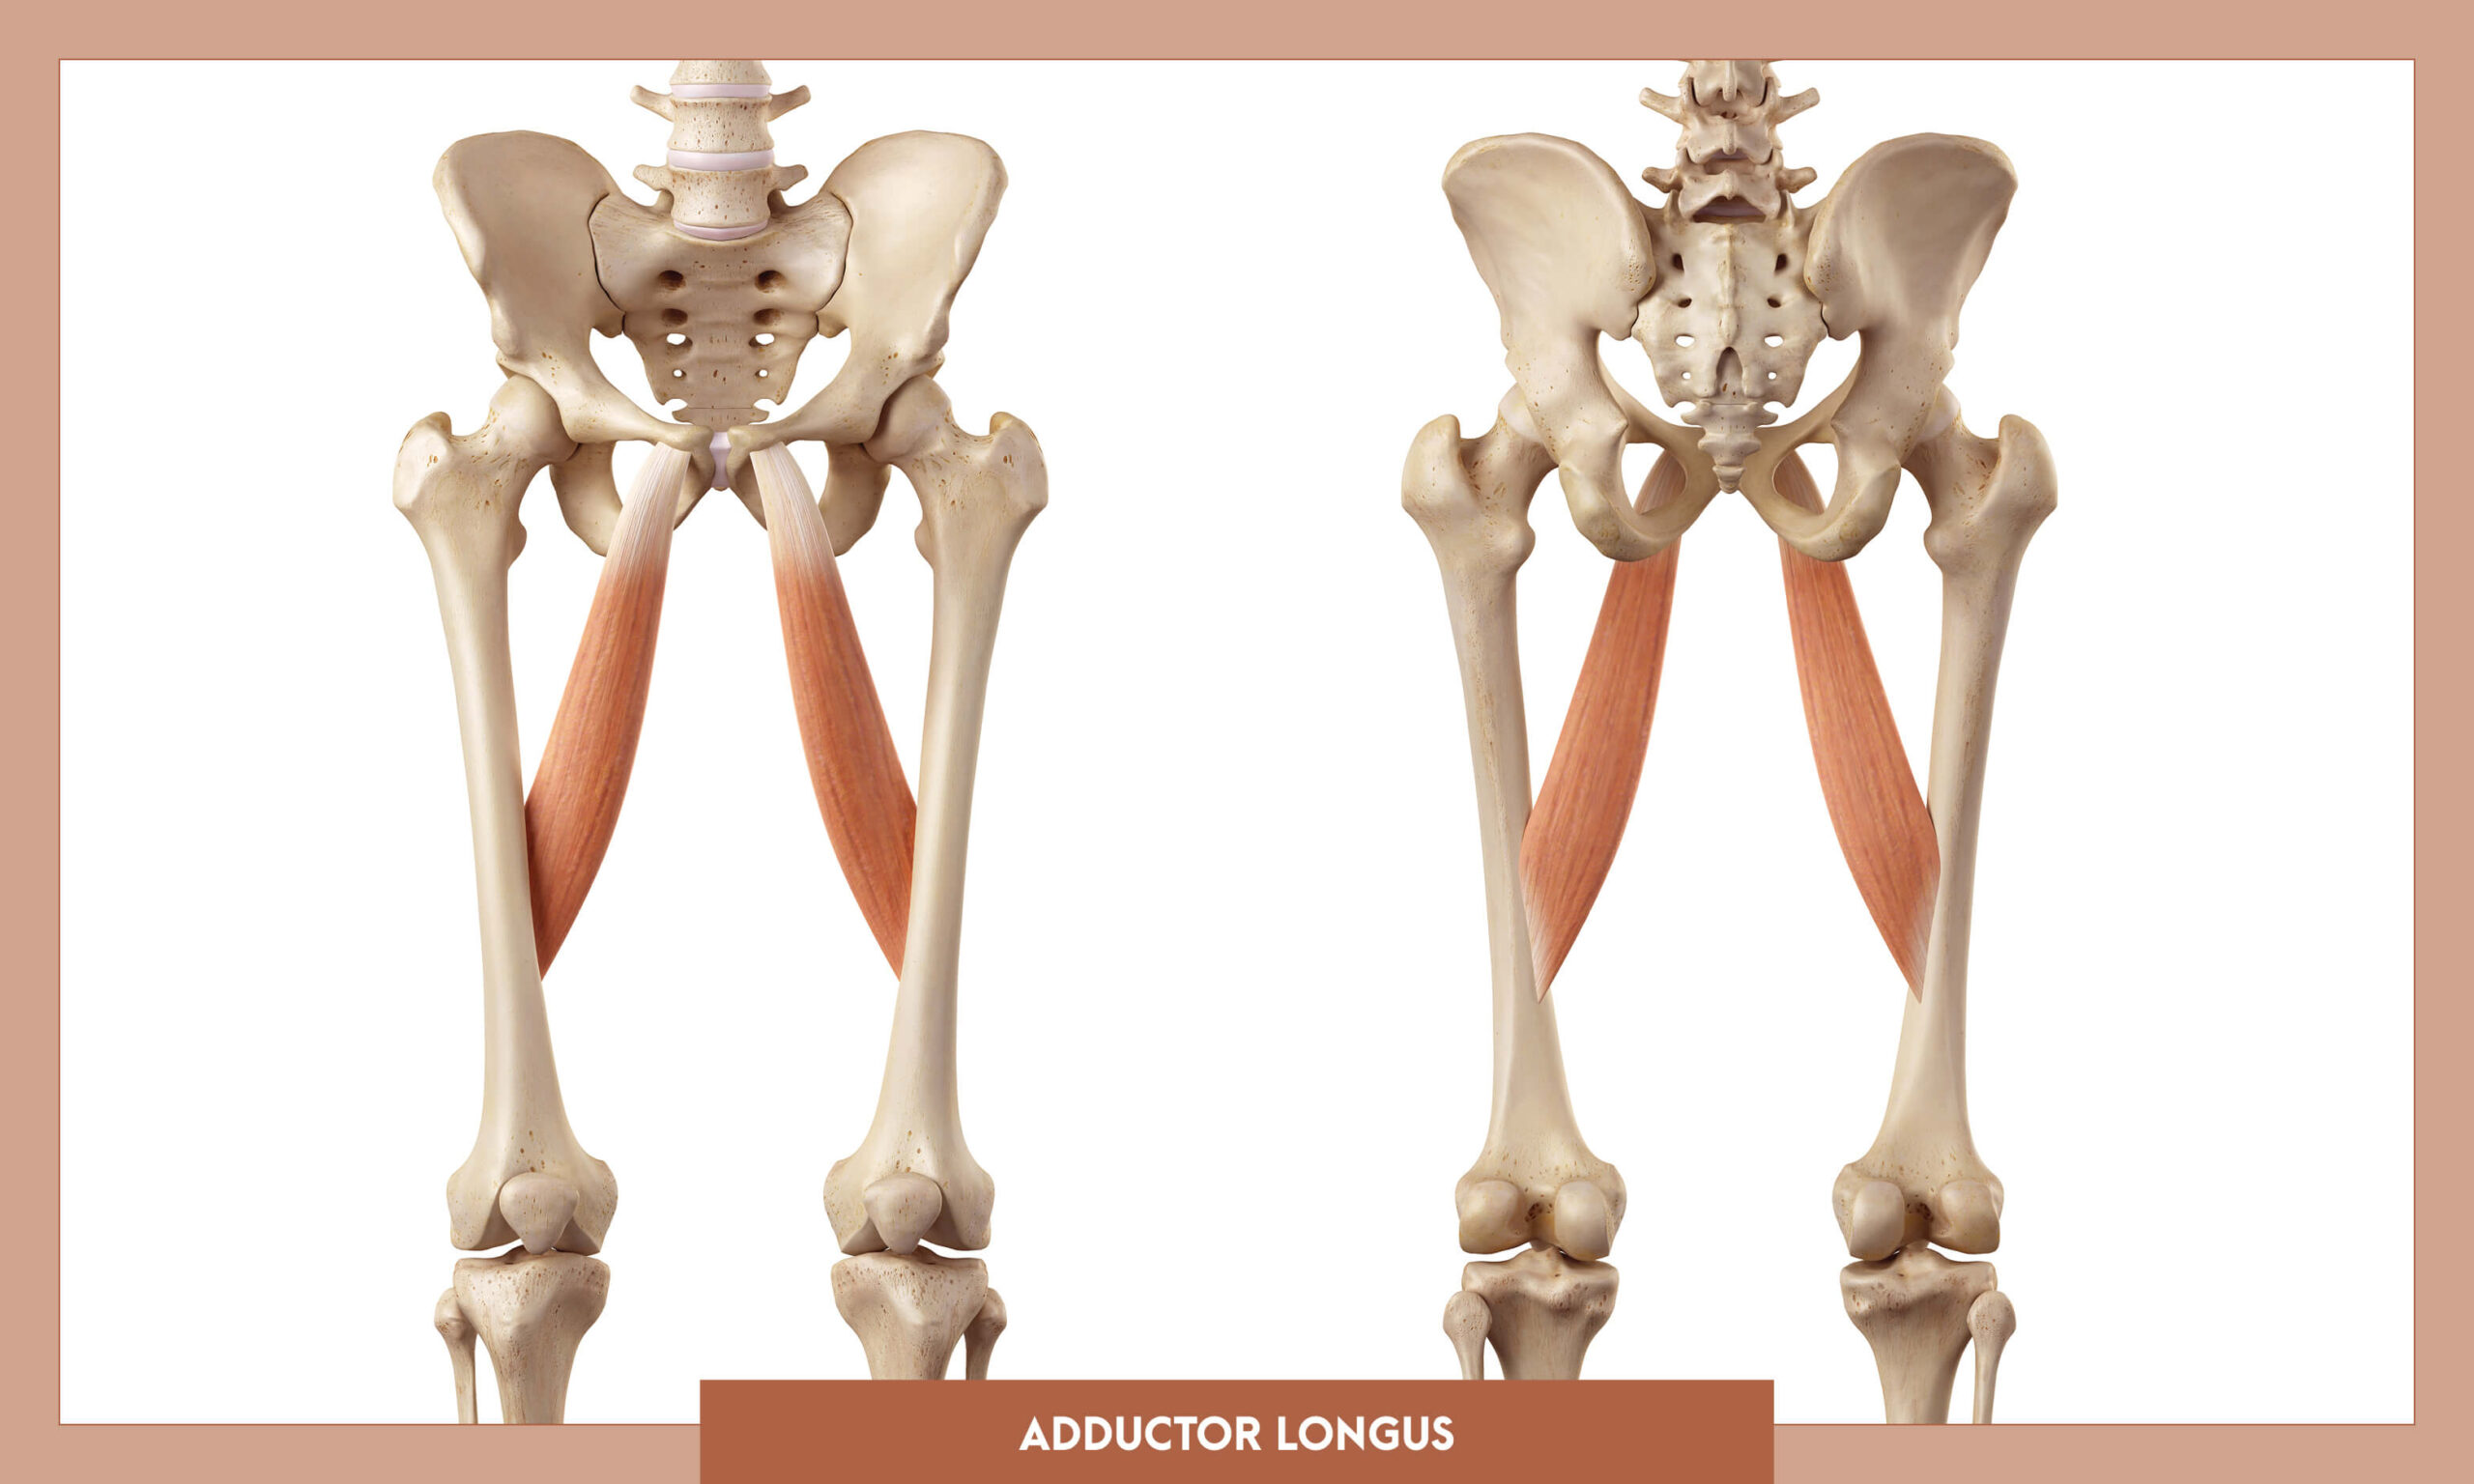 Muscles of thee Lower Limb - Adductor longus